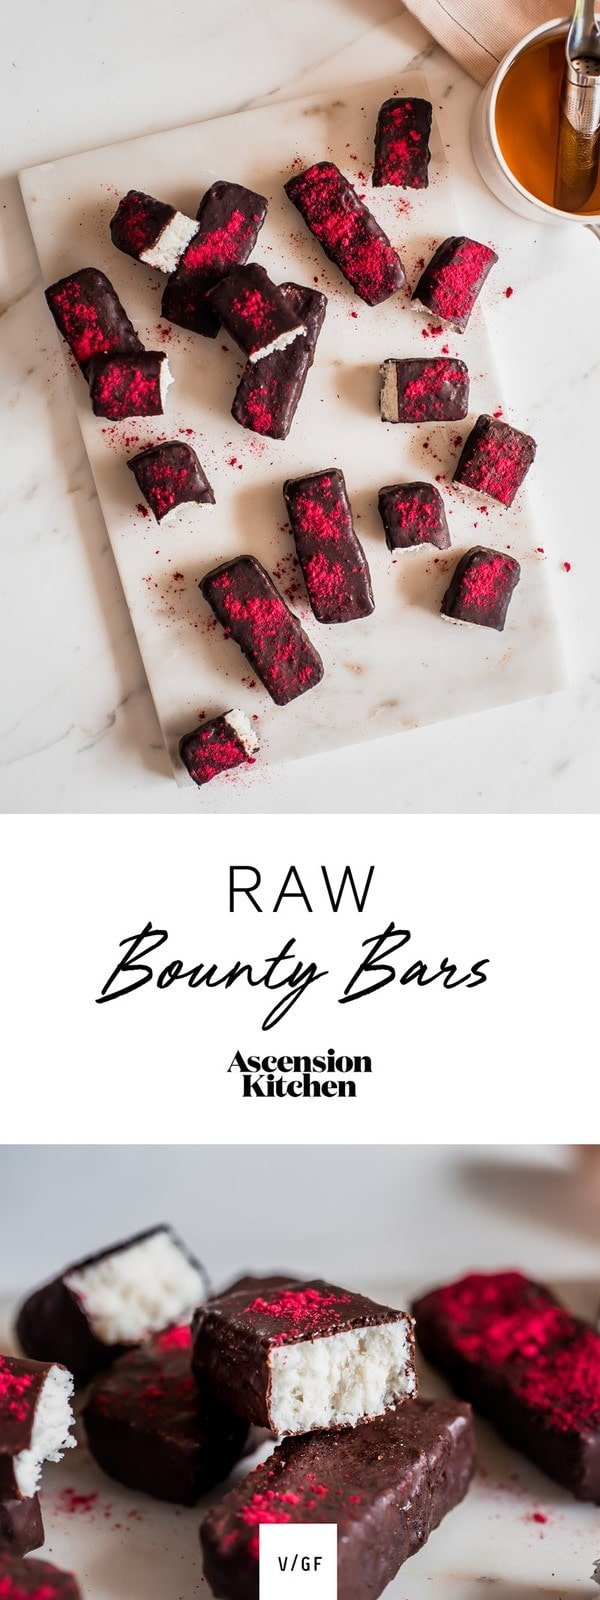 Healthy raw bounty bars dipped in homemade raw chocolate. Healthy bounty bars, raw bounty bars recipe. #AscensionKitchen   // Pin to your own inspiration board! //